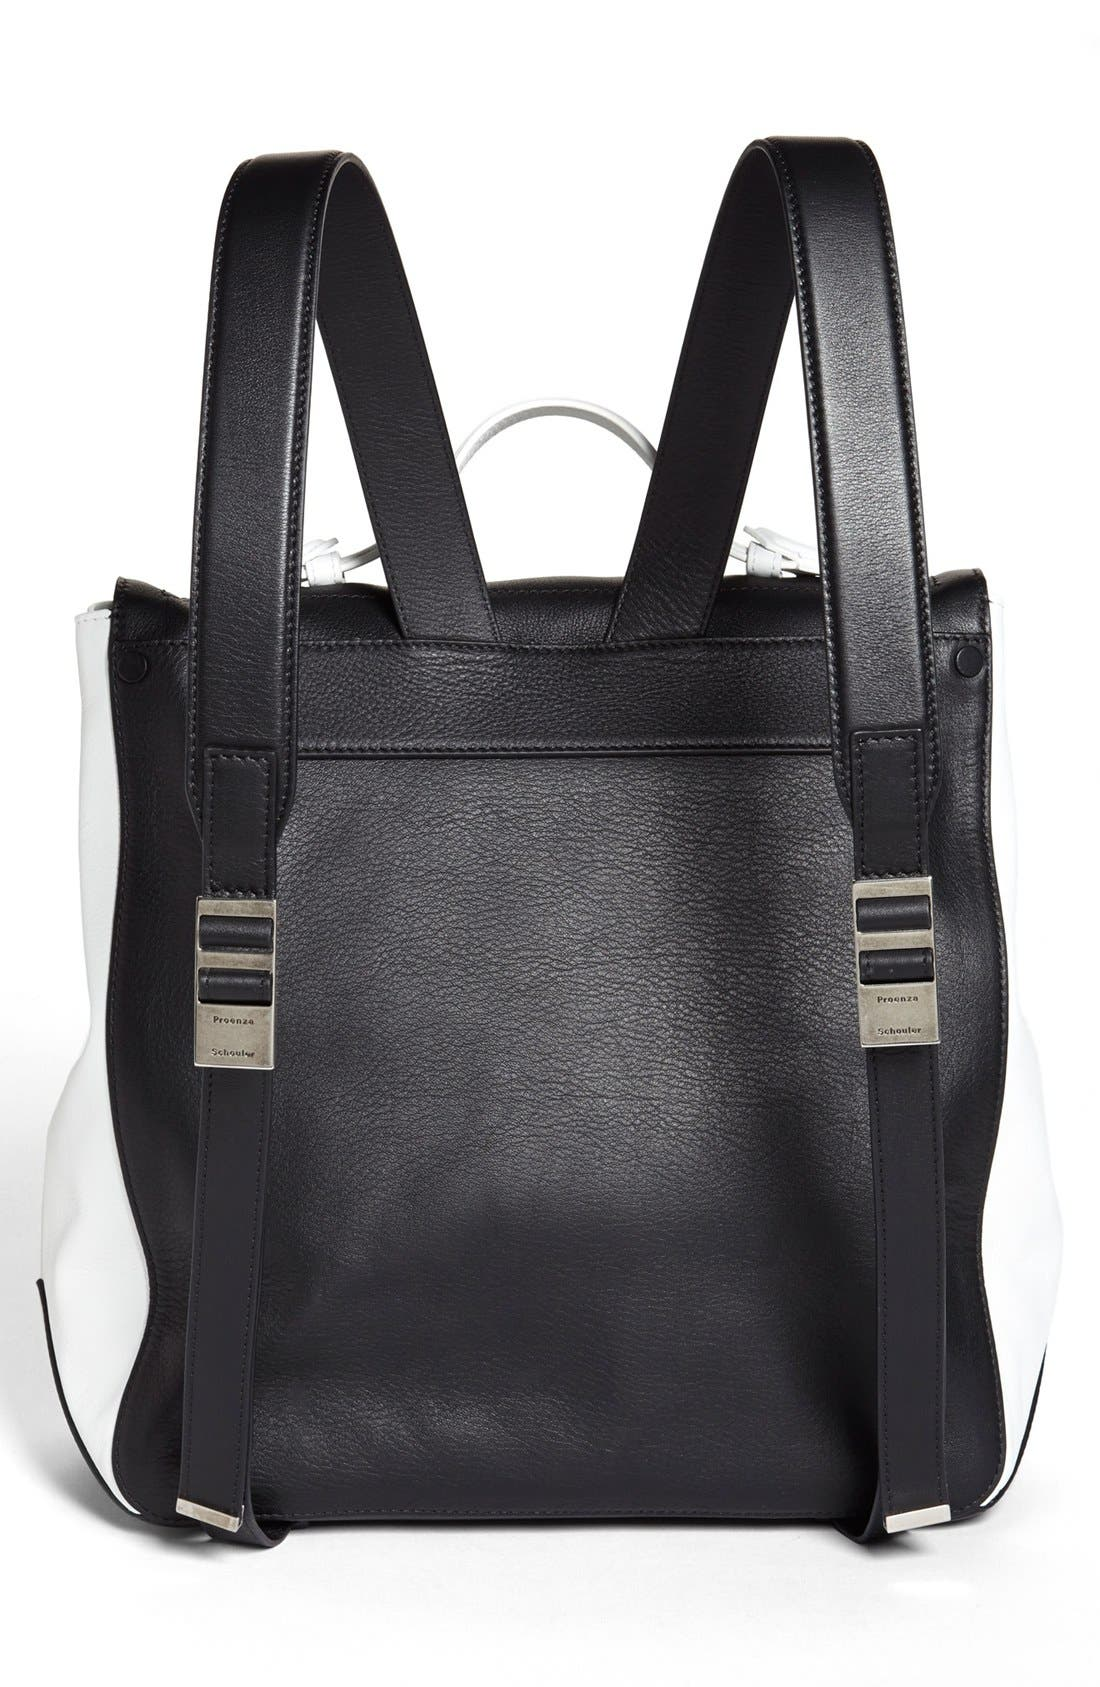 PROENZA SCHOULER, Calfskin Leather Backpack, Alternate thumbnail 4, color, 010